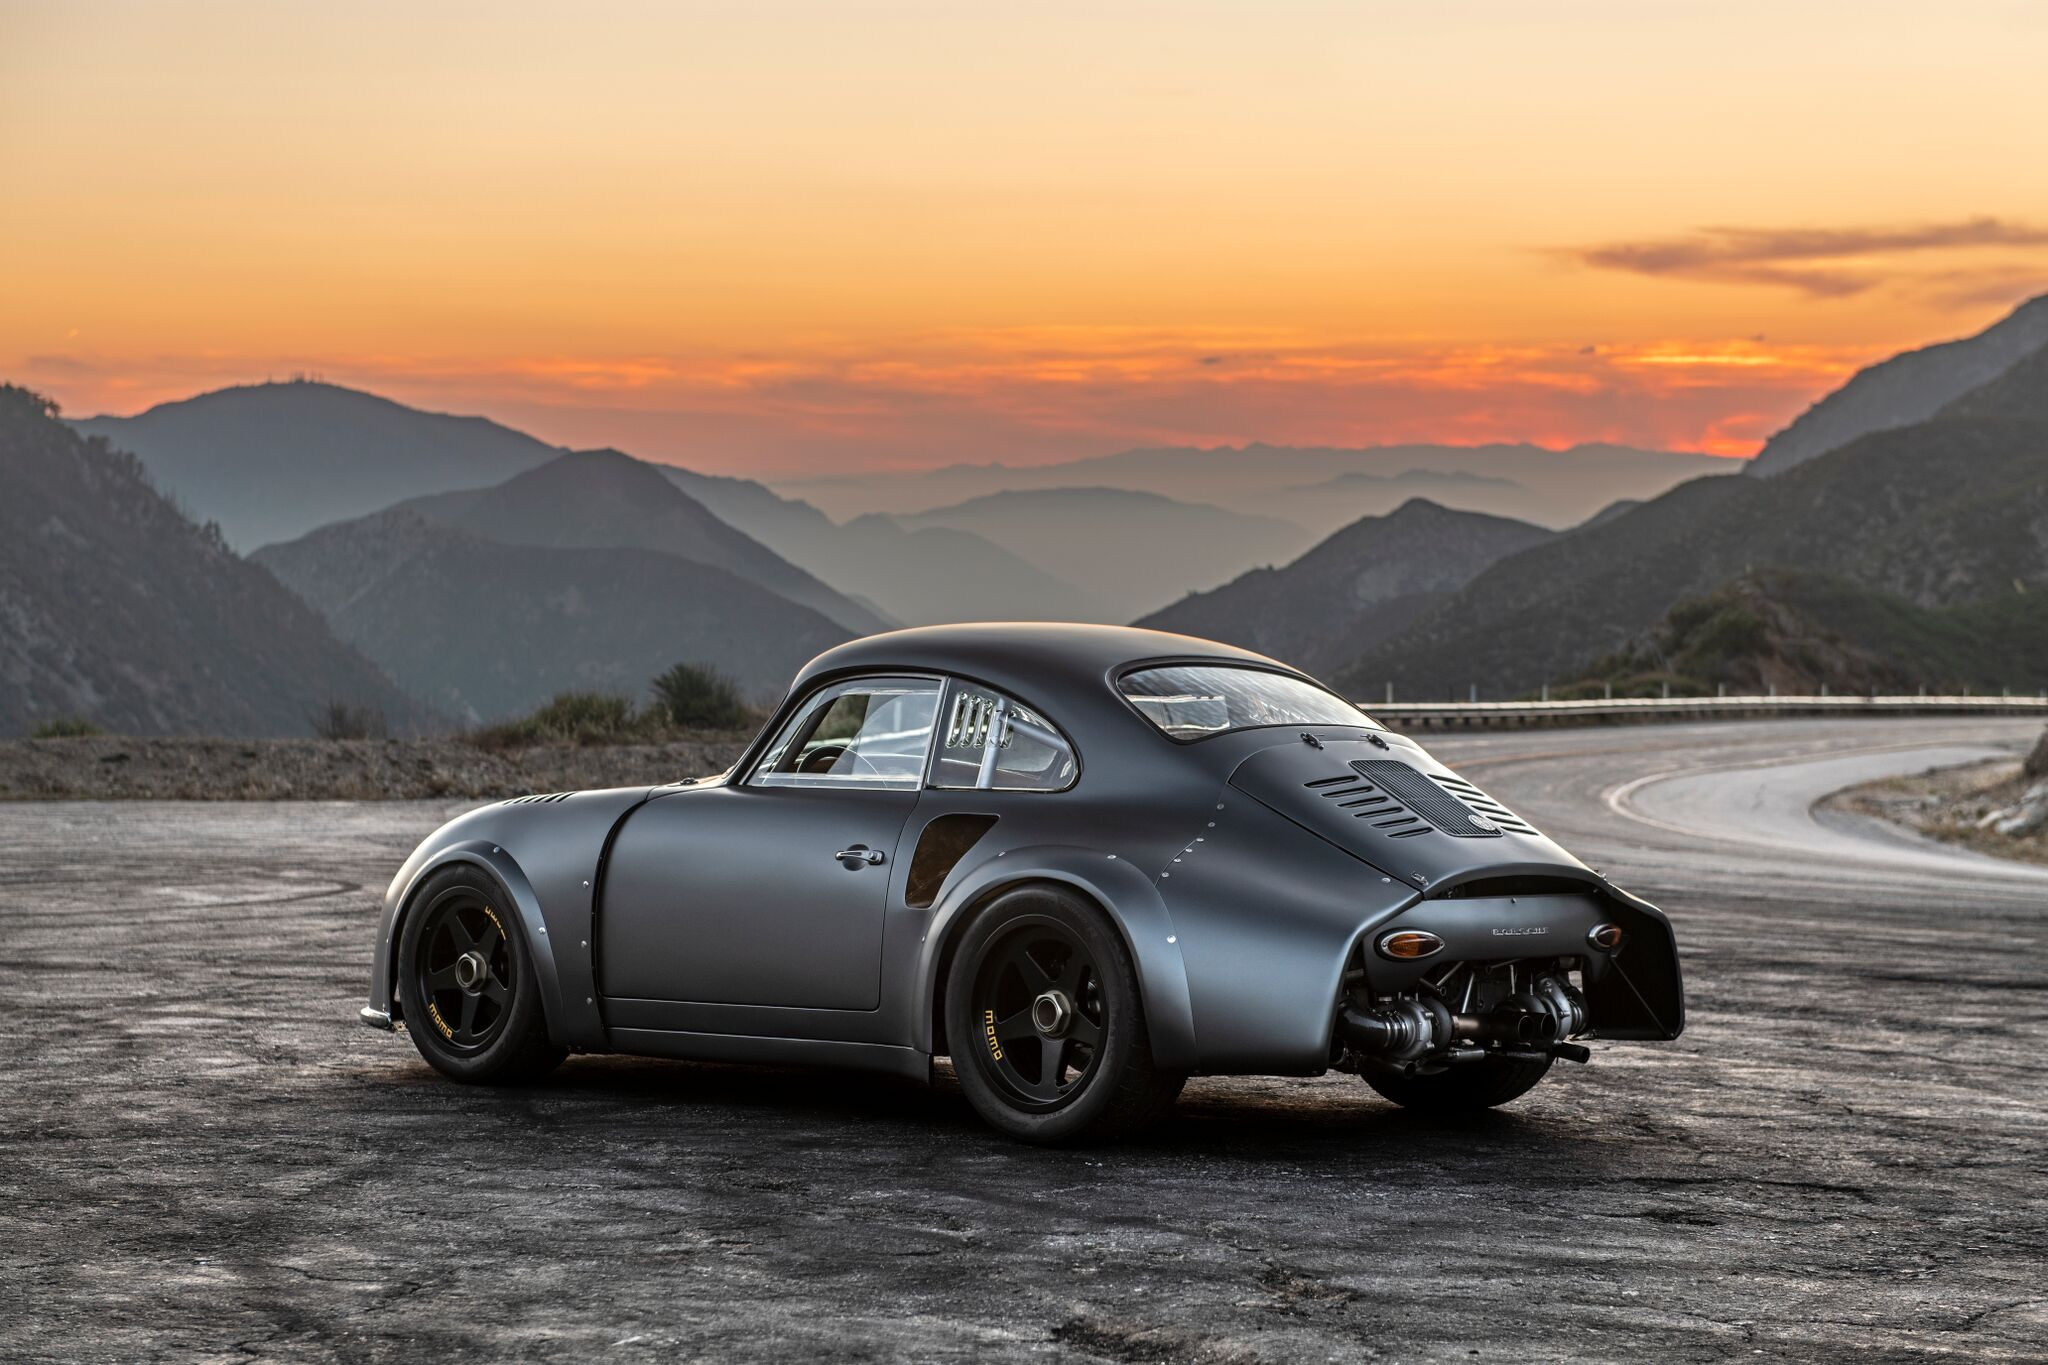 Porsche-356-RSR-Outlaw-by-Momo-and-Emory-motorsports-1